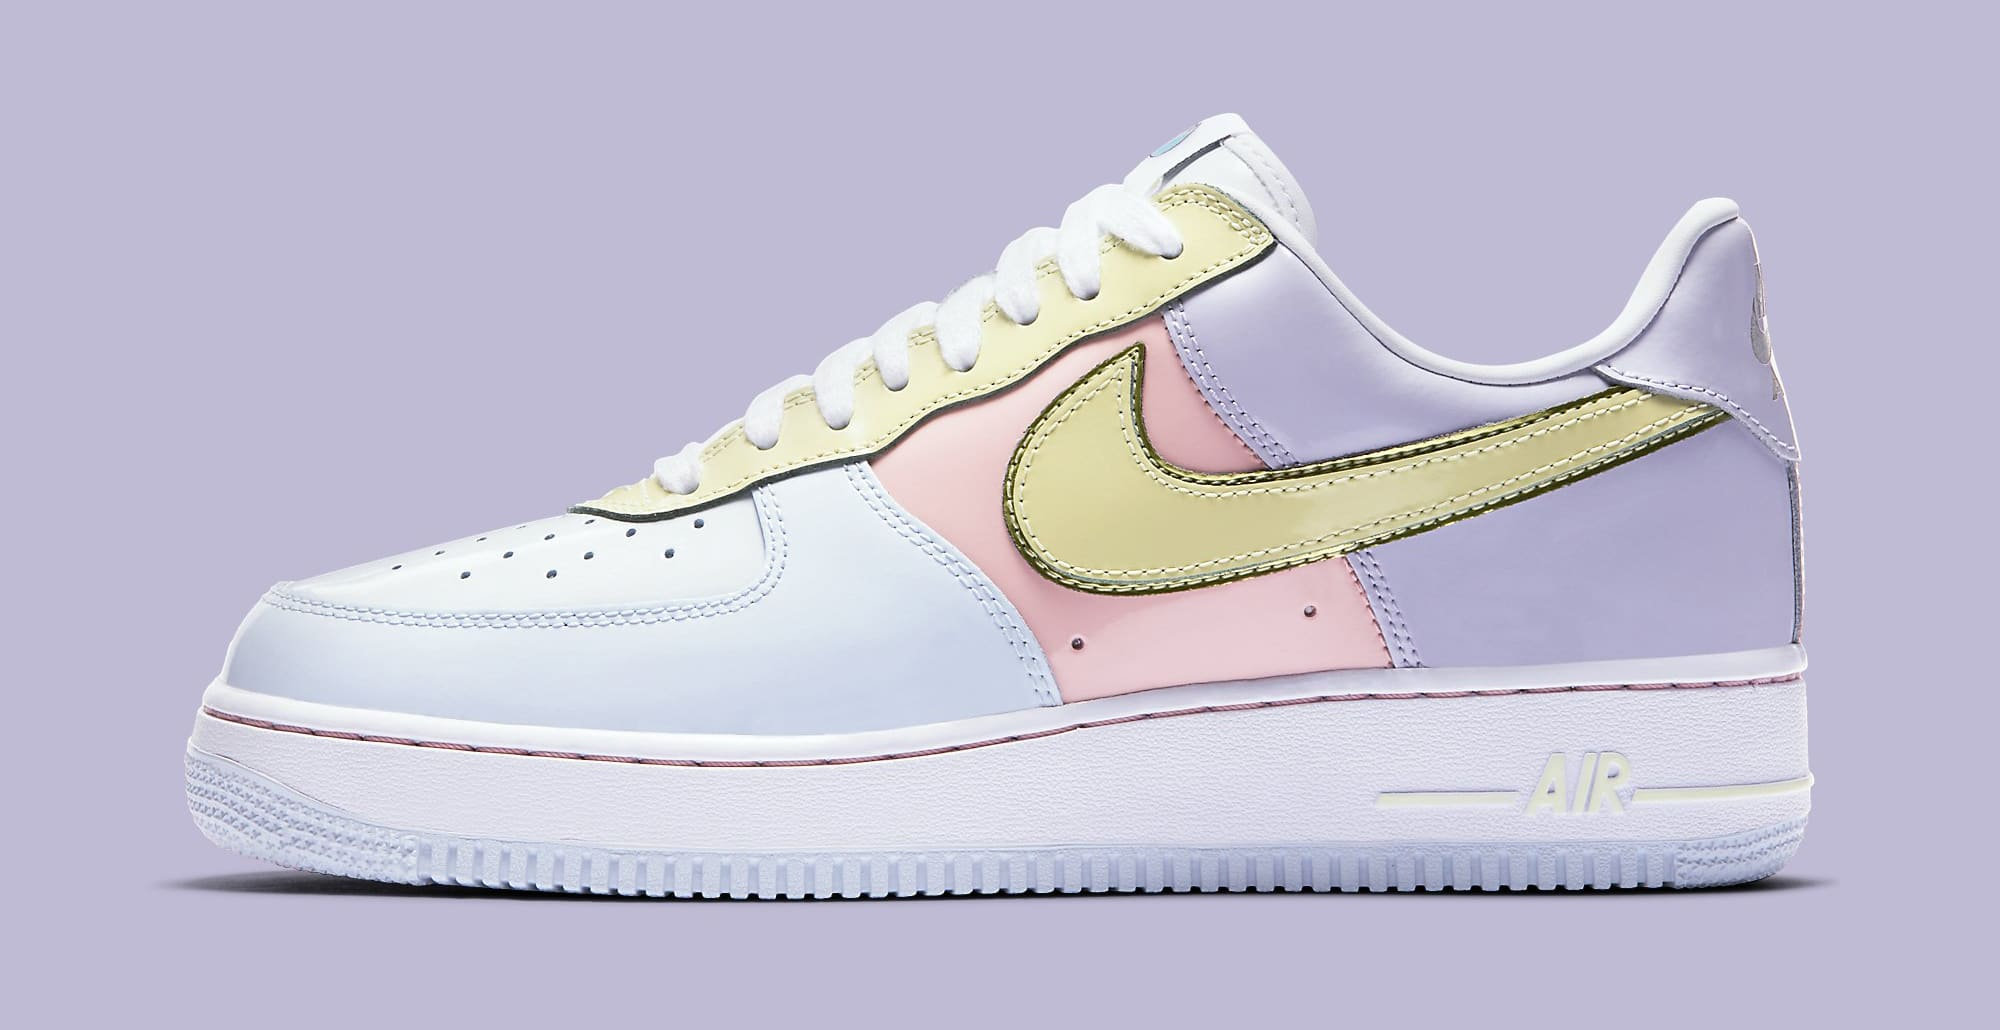 Easter Egg Nike Air Force 1 2017 Profile